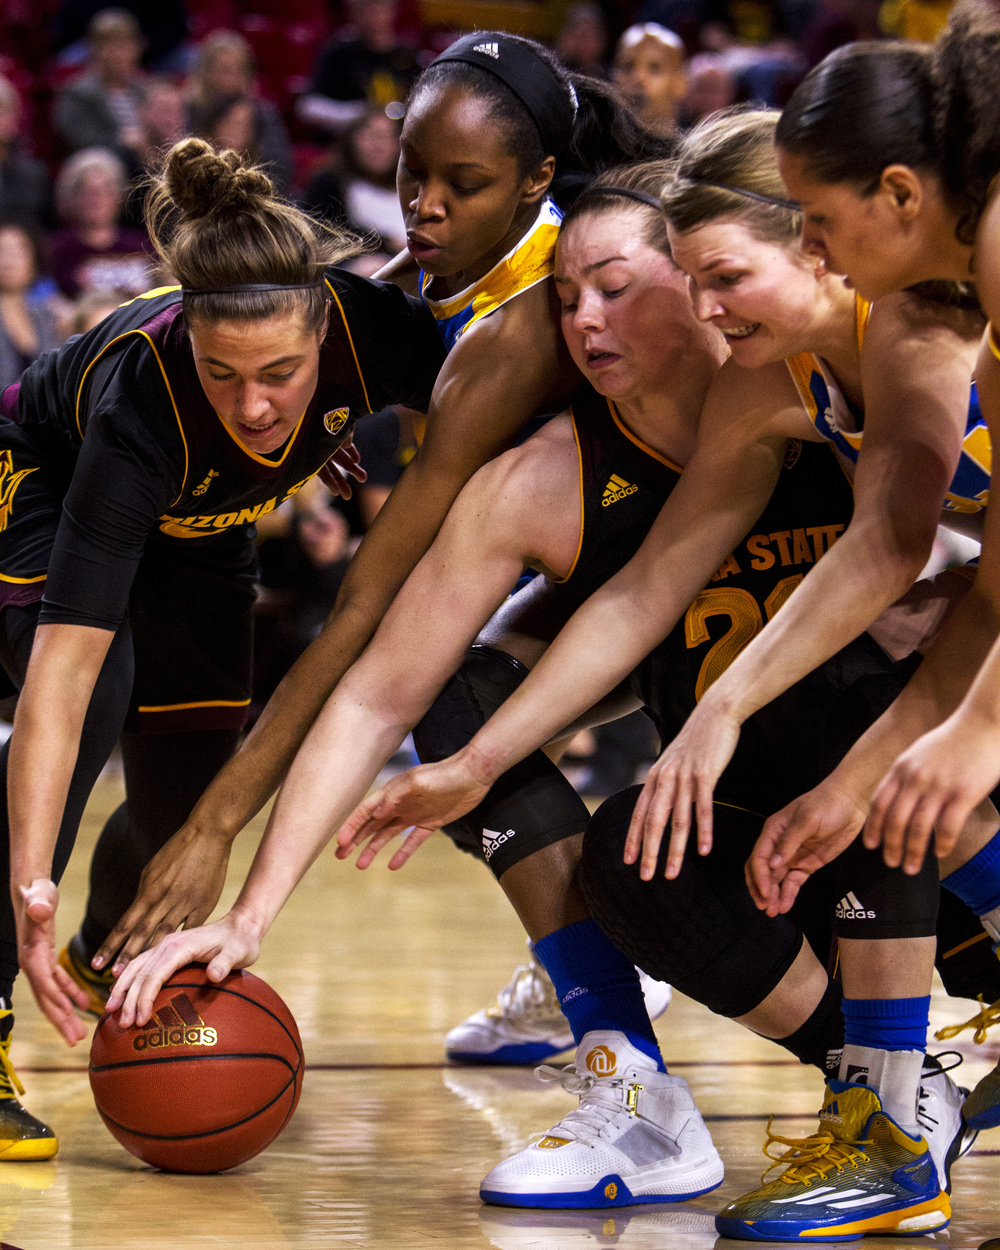 Arizona State forces a jump ball against UCLA in the first quarter on Friday, Feb. 5, 2016 at Wells Fargo Arena in Tempe, Ariz. Arizona State won, 65-61.